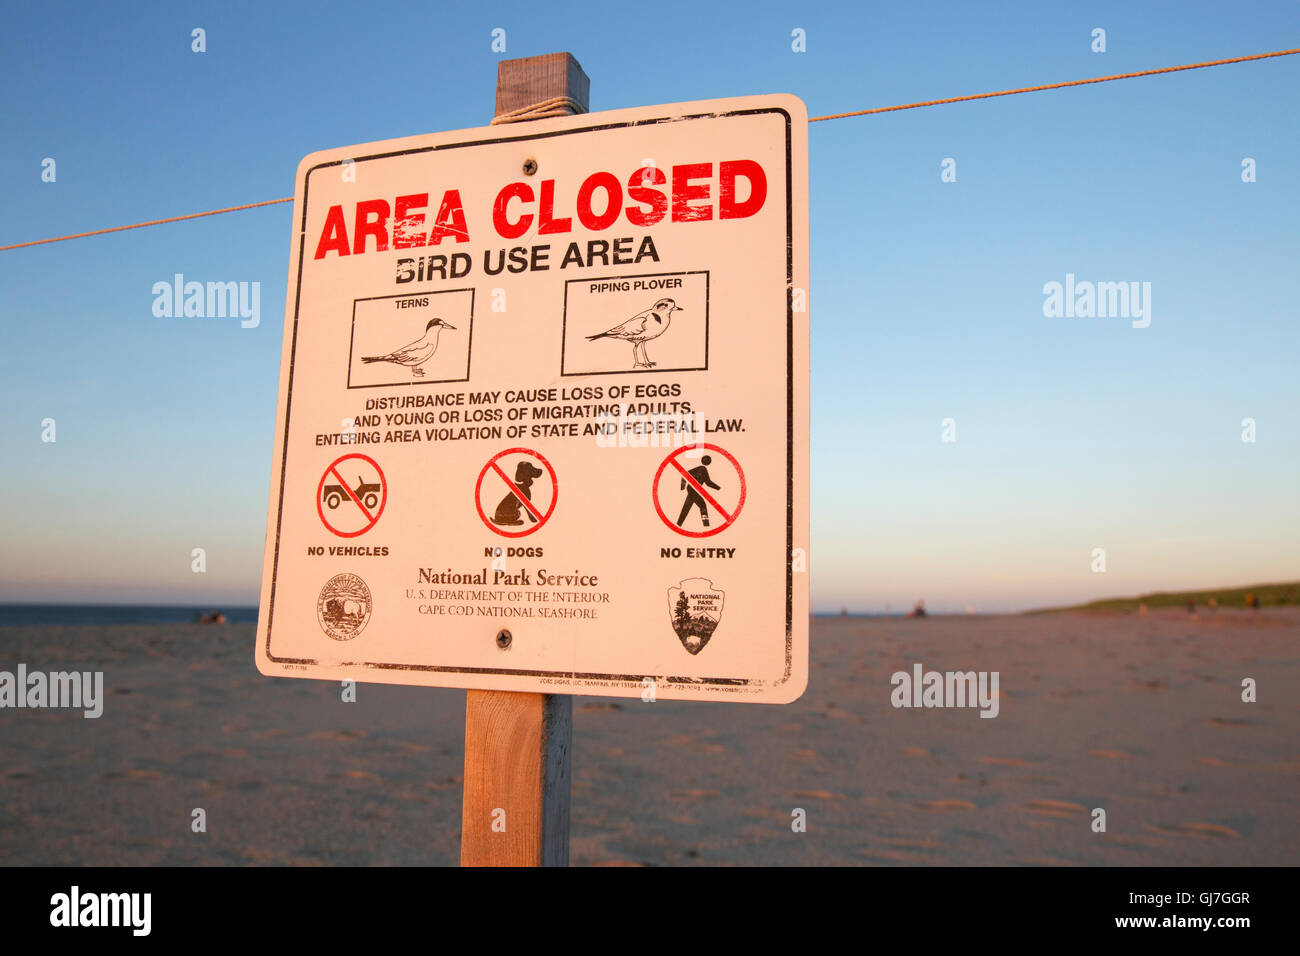 Wildlife preservation, Race Point Beach, Provincetown, Cape Cod, Massachusetts - Stock Image